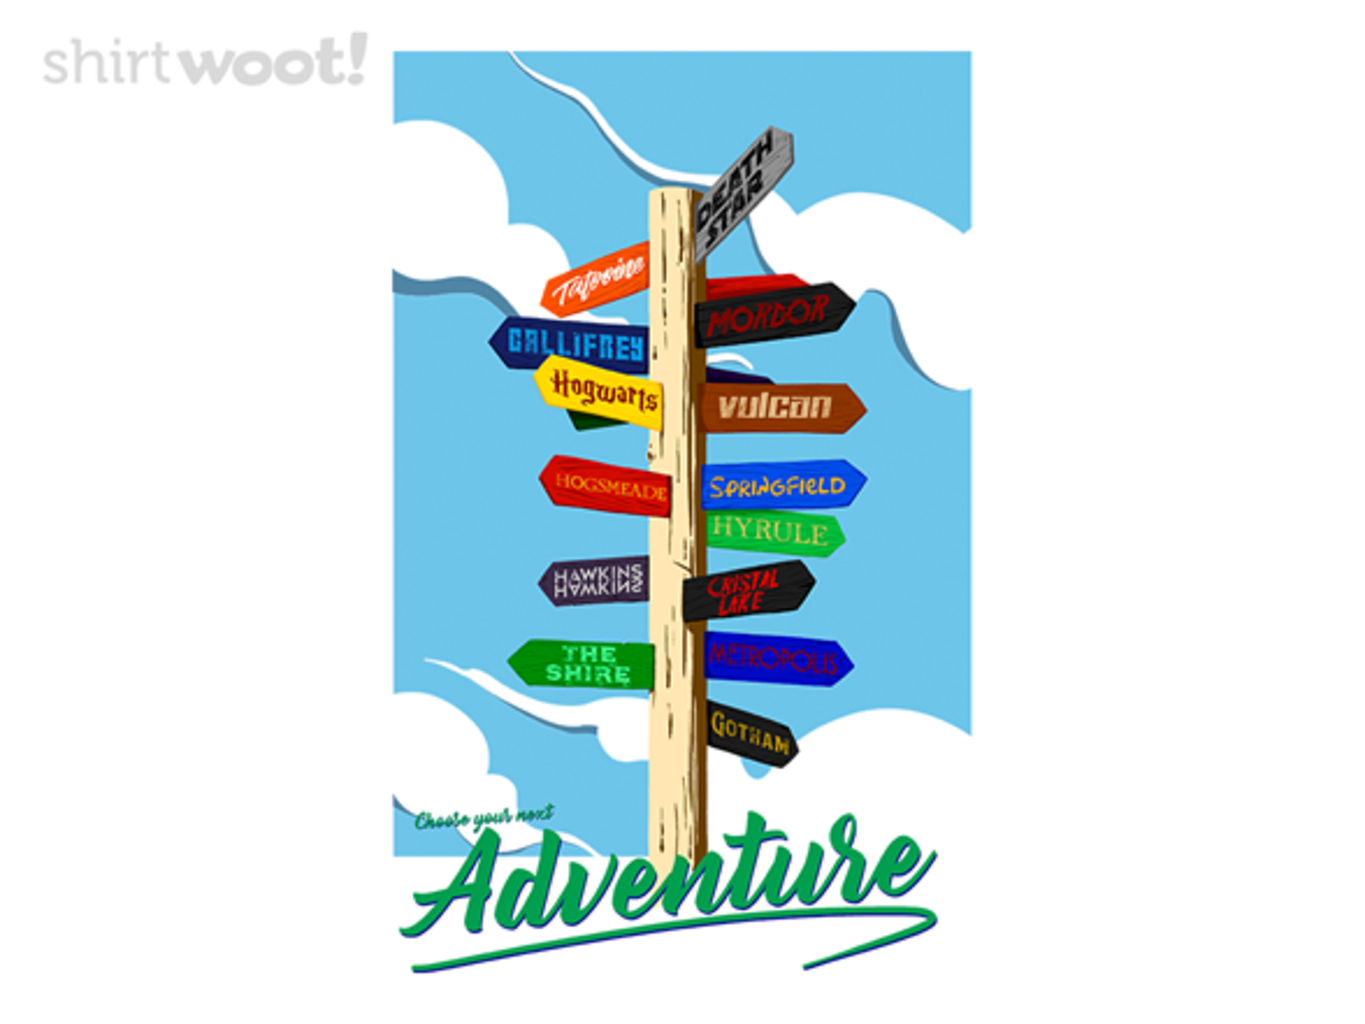 Woot!: Choose Your Next Adventure